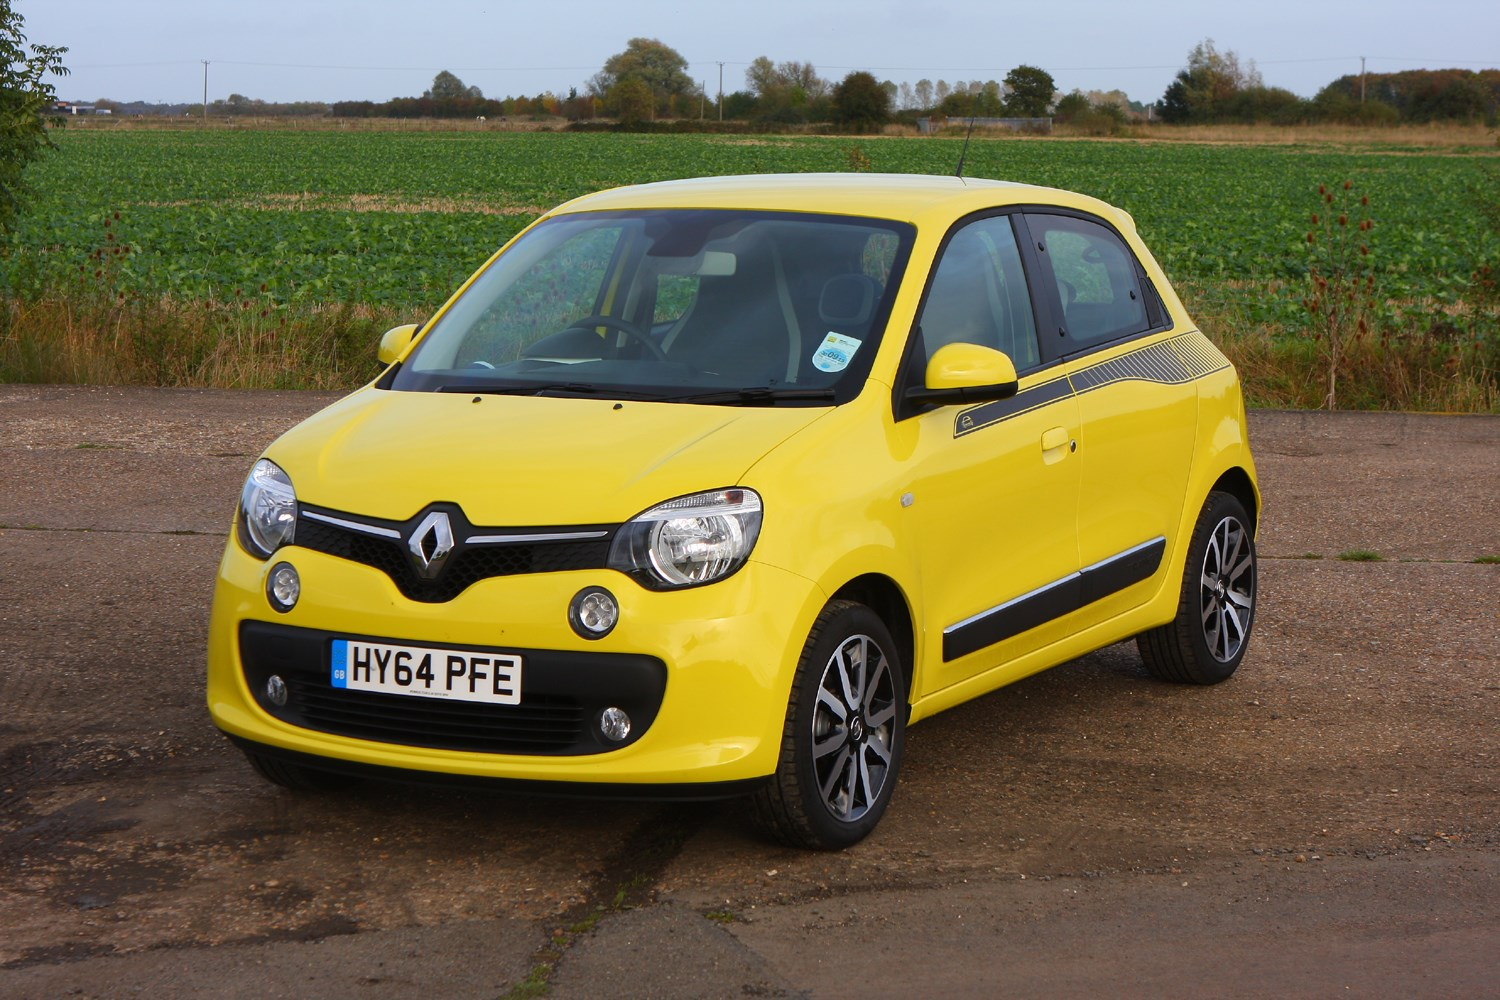 renault twingo hatchback review 2014 parkers. Black Bedroom Furniture Sets. Home Design Ideas